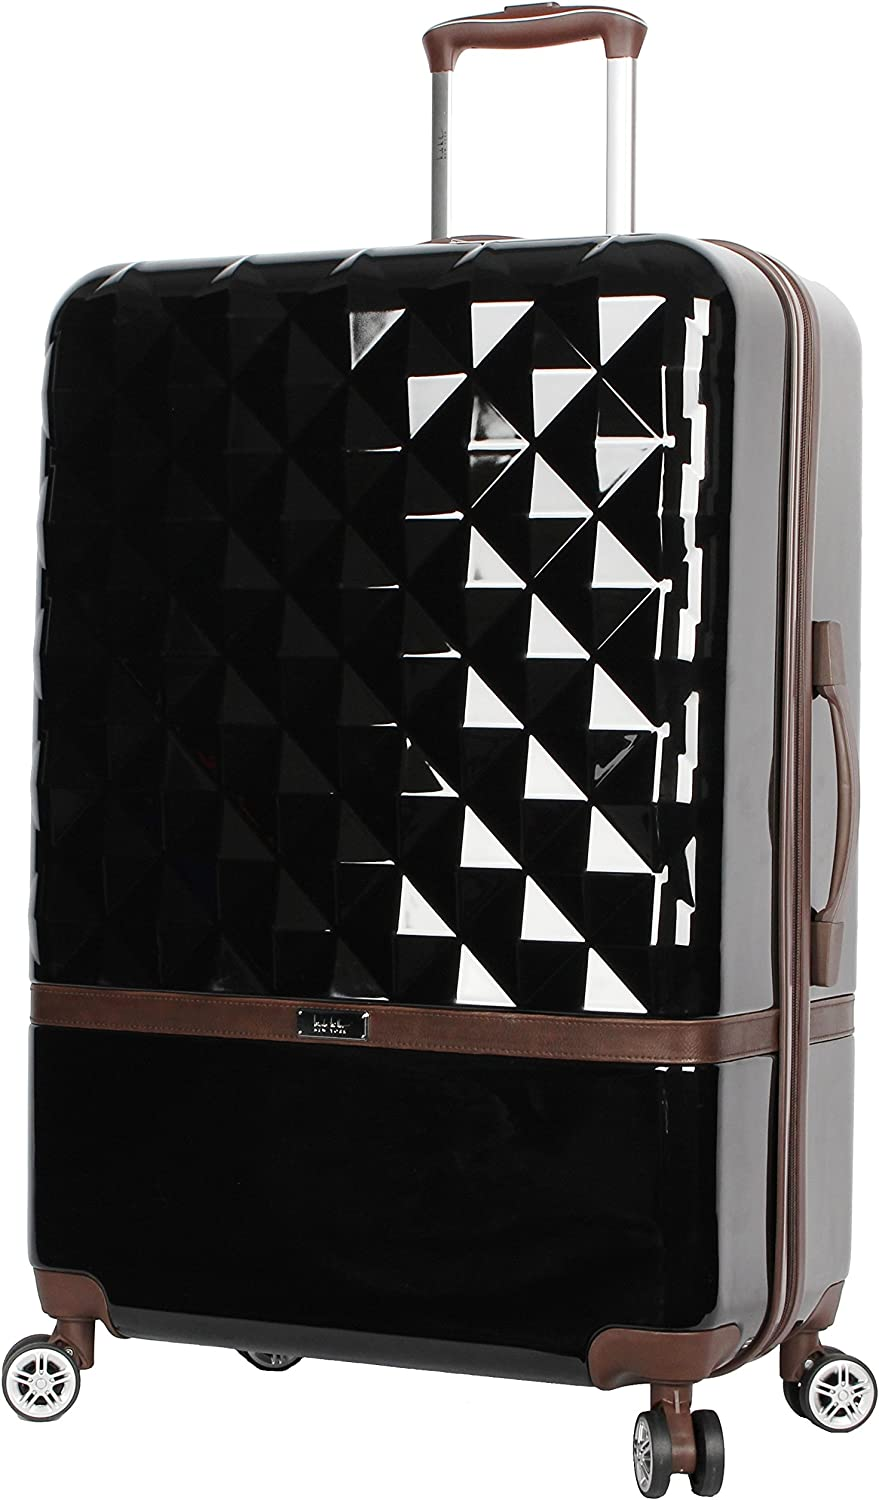 Nicole Miller Luggage Reviews - 2021 Top Collections 2